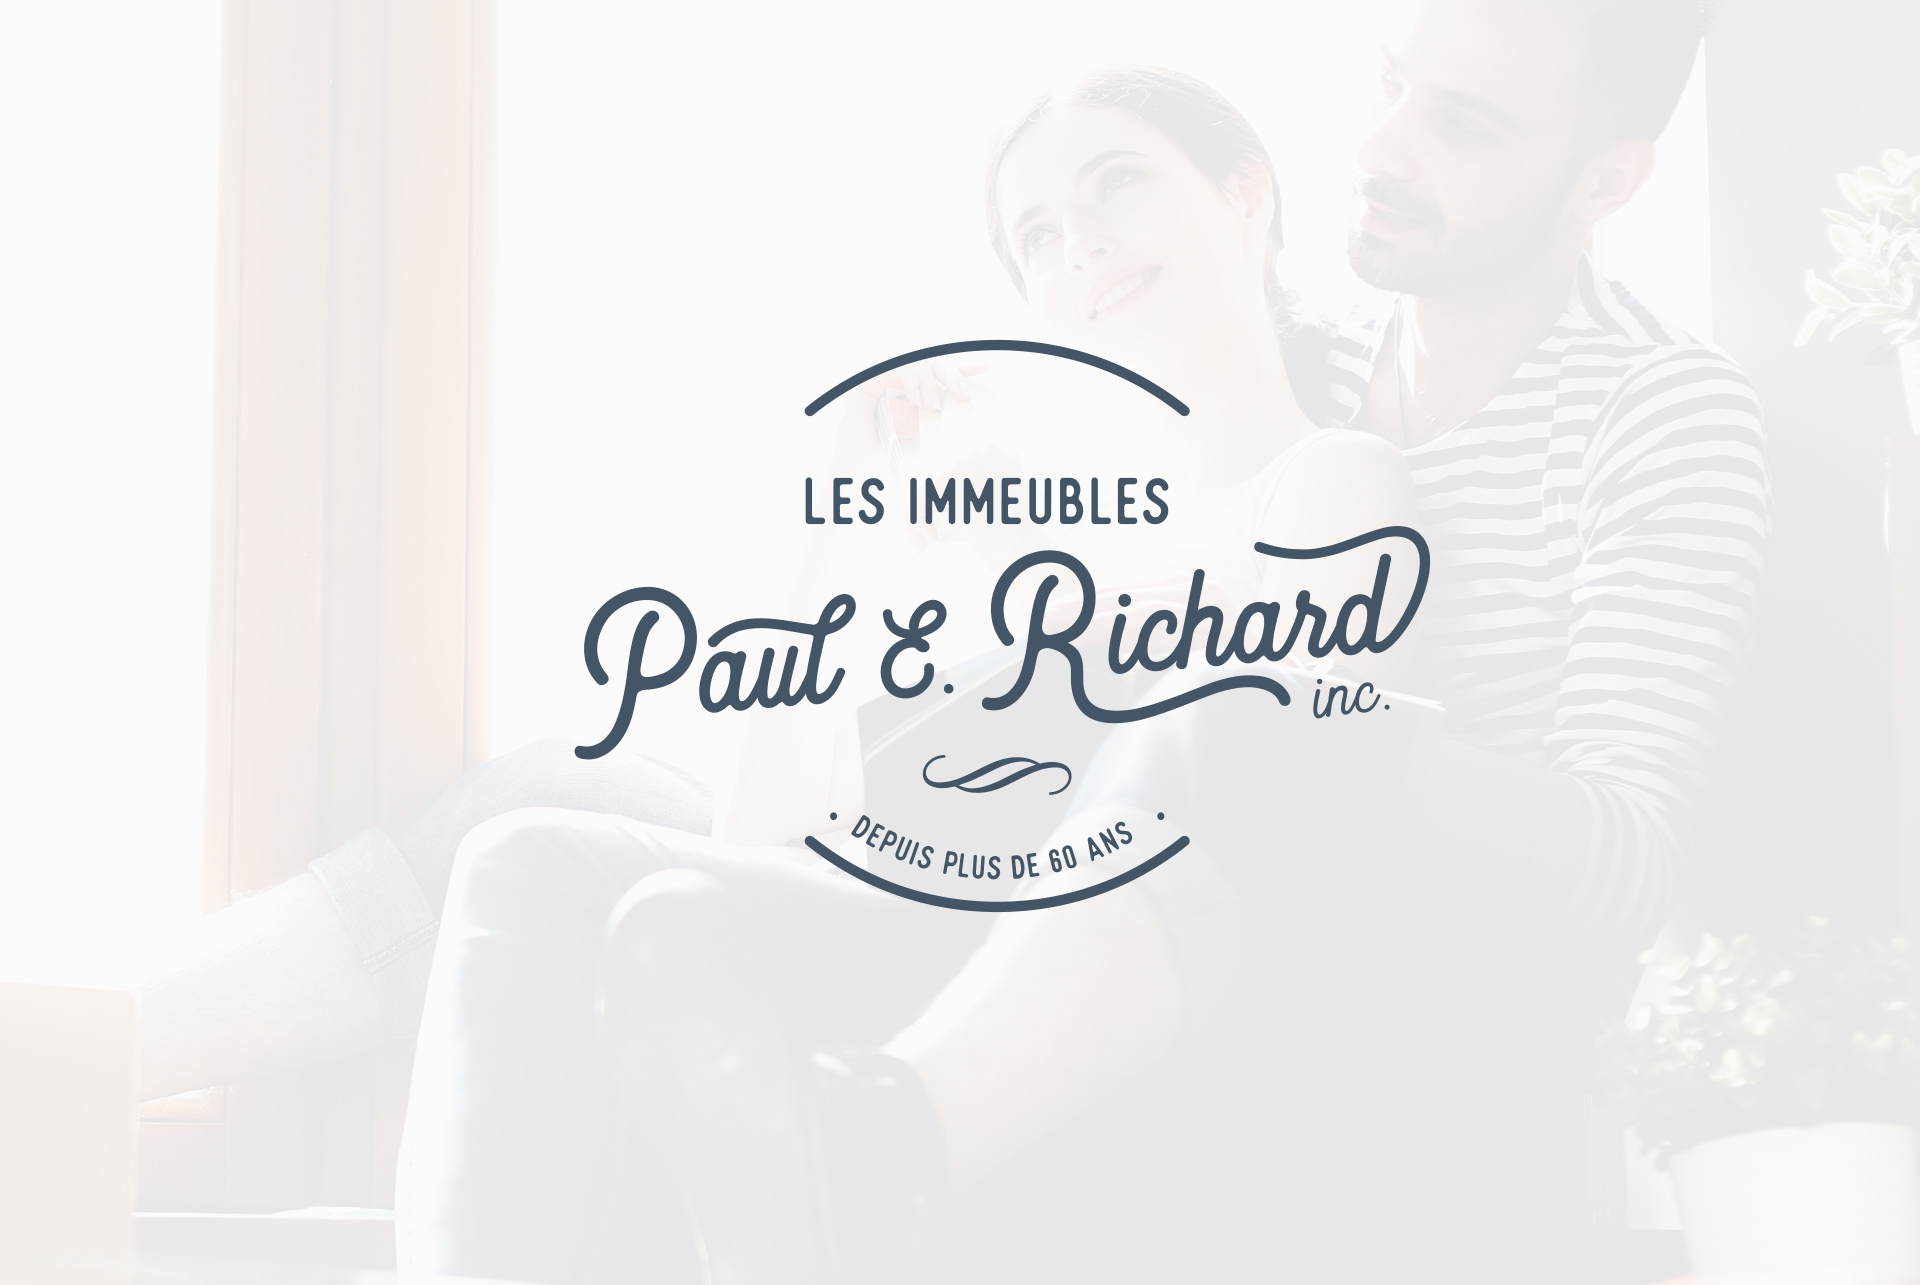 Logo / Immeubles Paul E Richard inc.